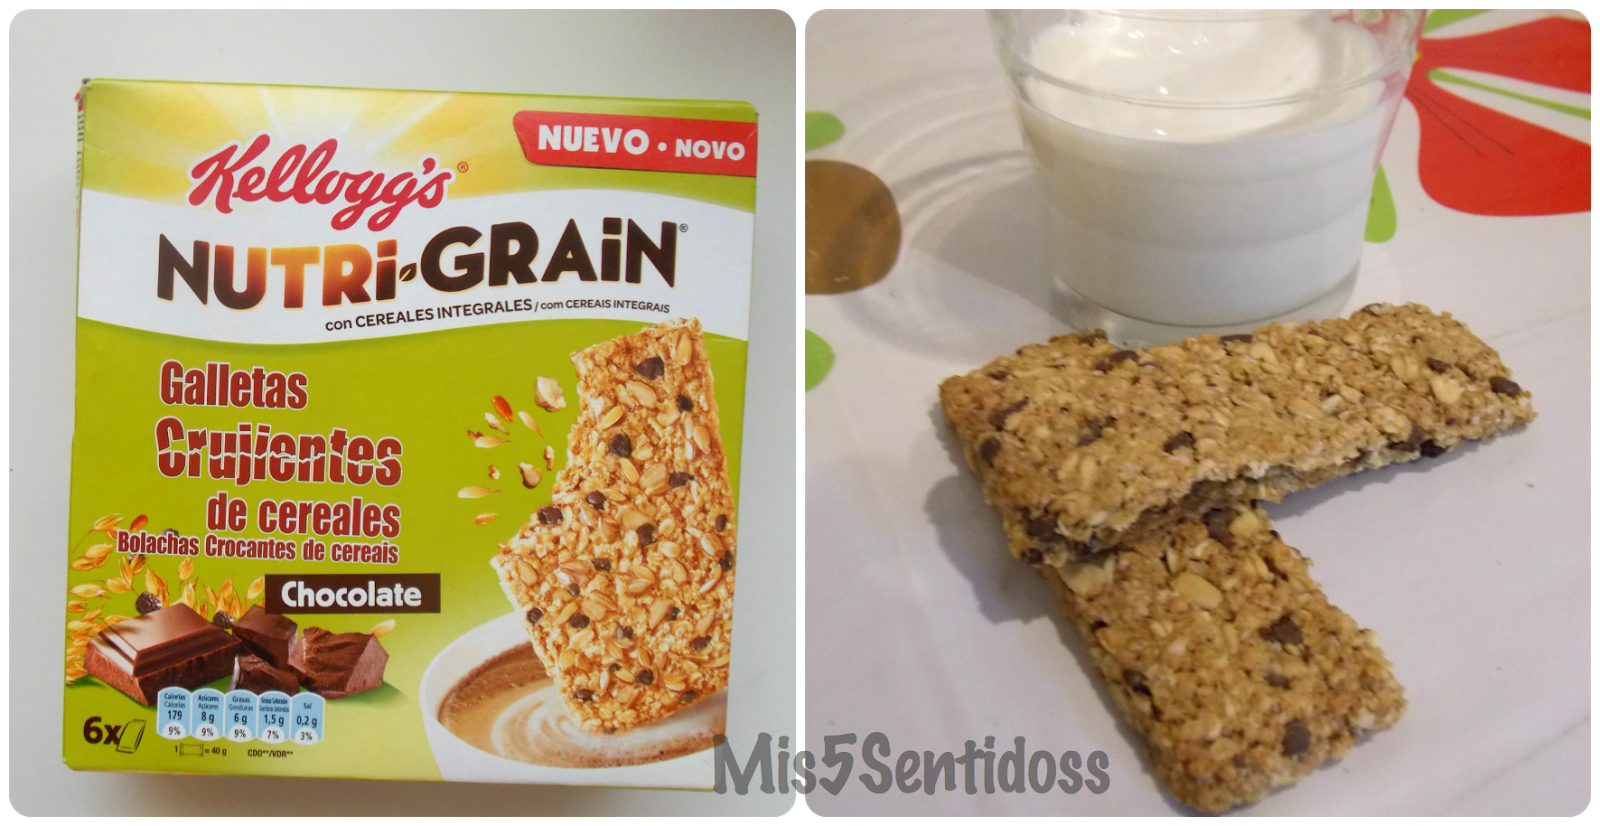 Degustabox junio 2014 kellogg´s nutri-grain